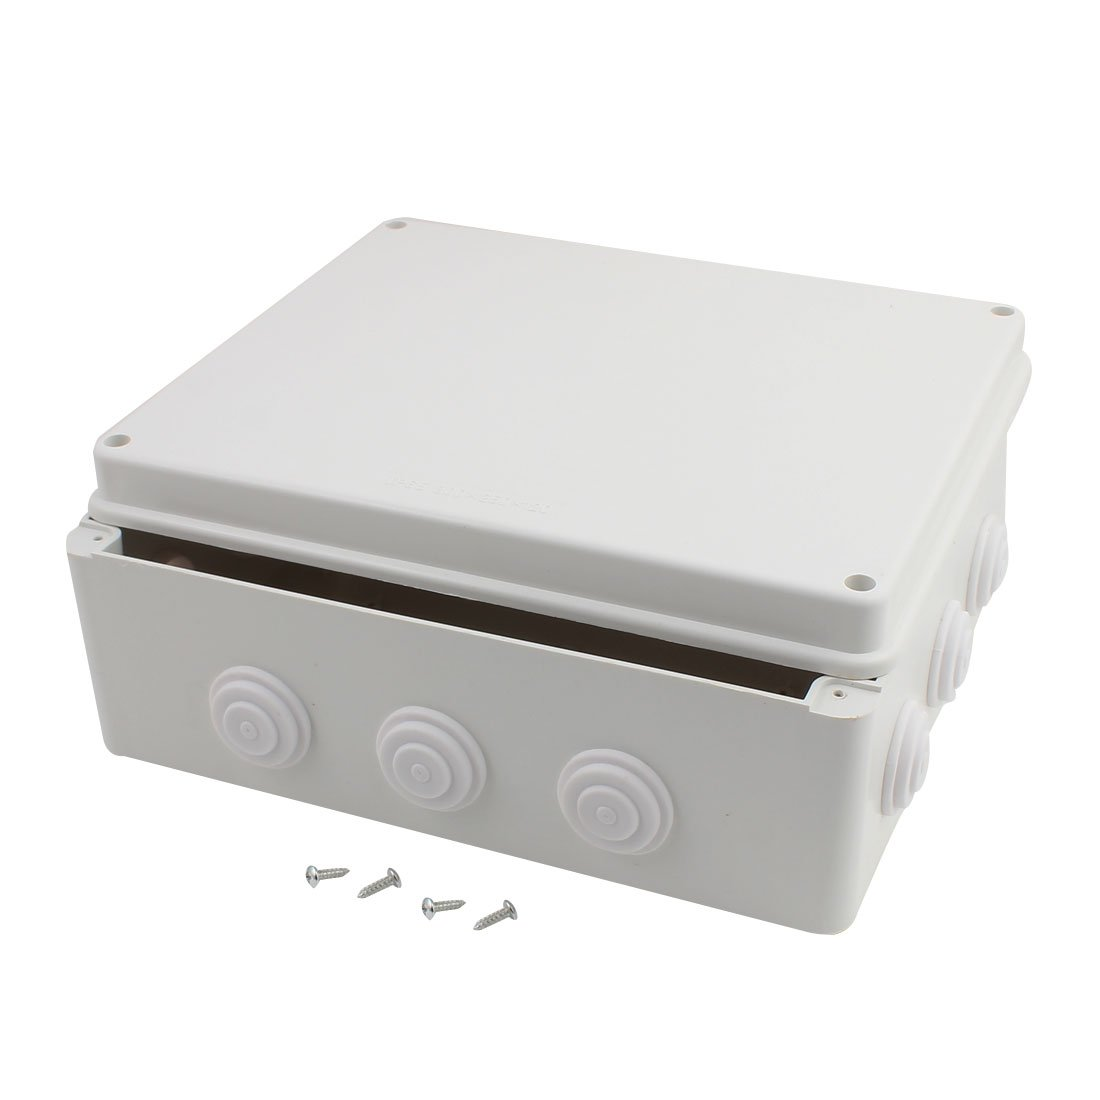 uxcell 200mmx100mmx70mm Dustproof IP65 Junction Box Universal Electric Project Enclosure Gray a17030700ux1389